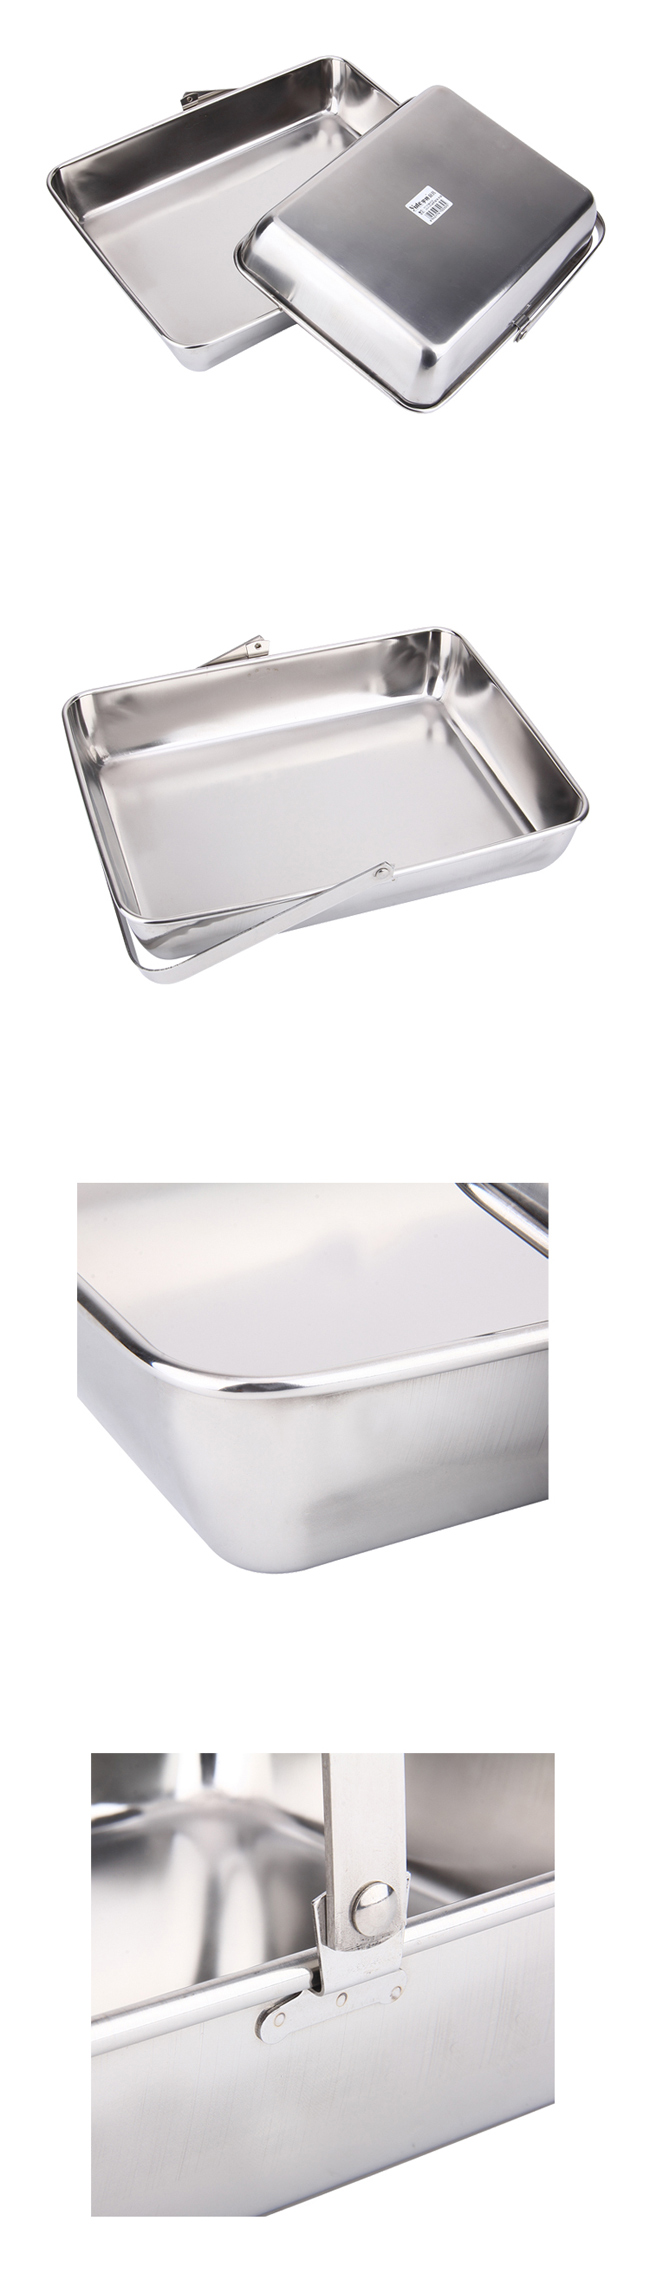 Wholesale Hotel Supplies Stainless Steel Portable Dish Towel & Serving Tray